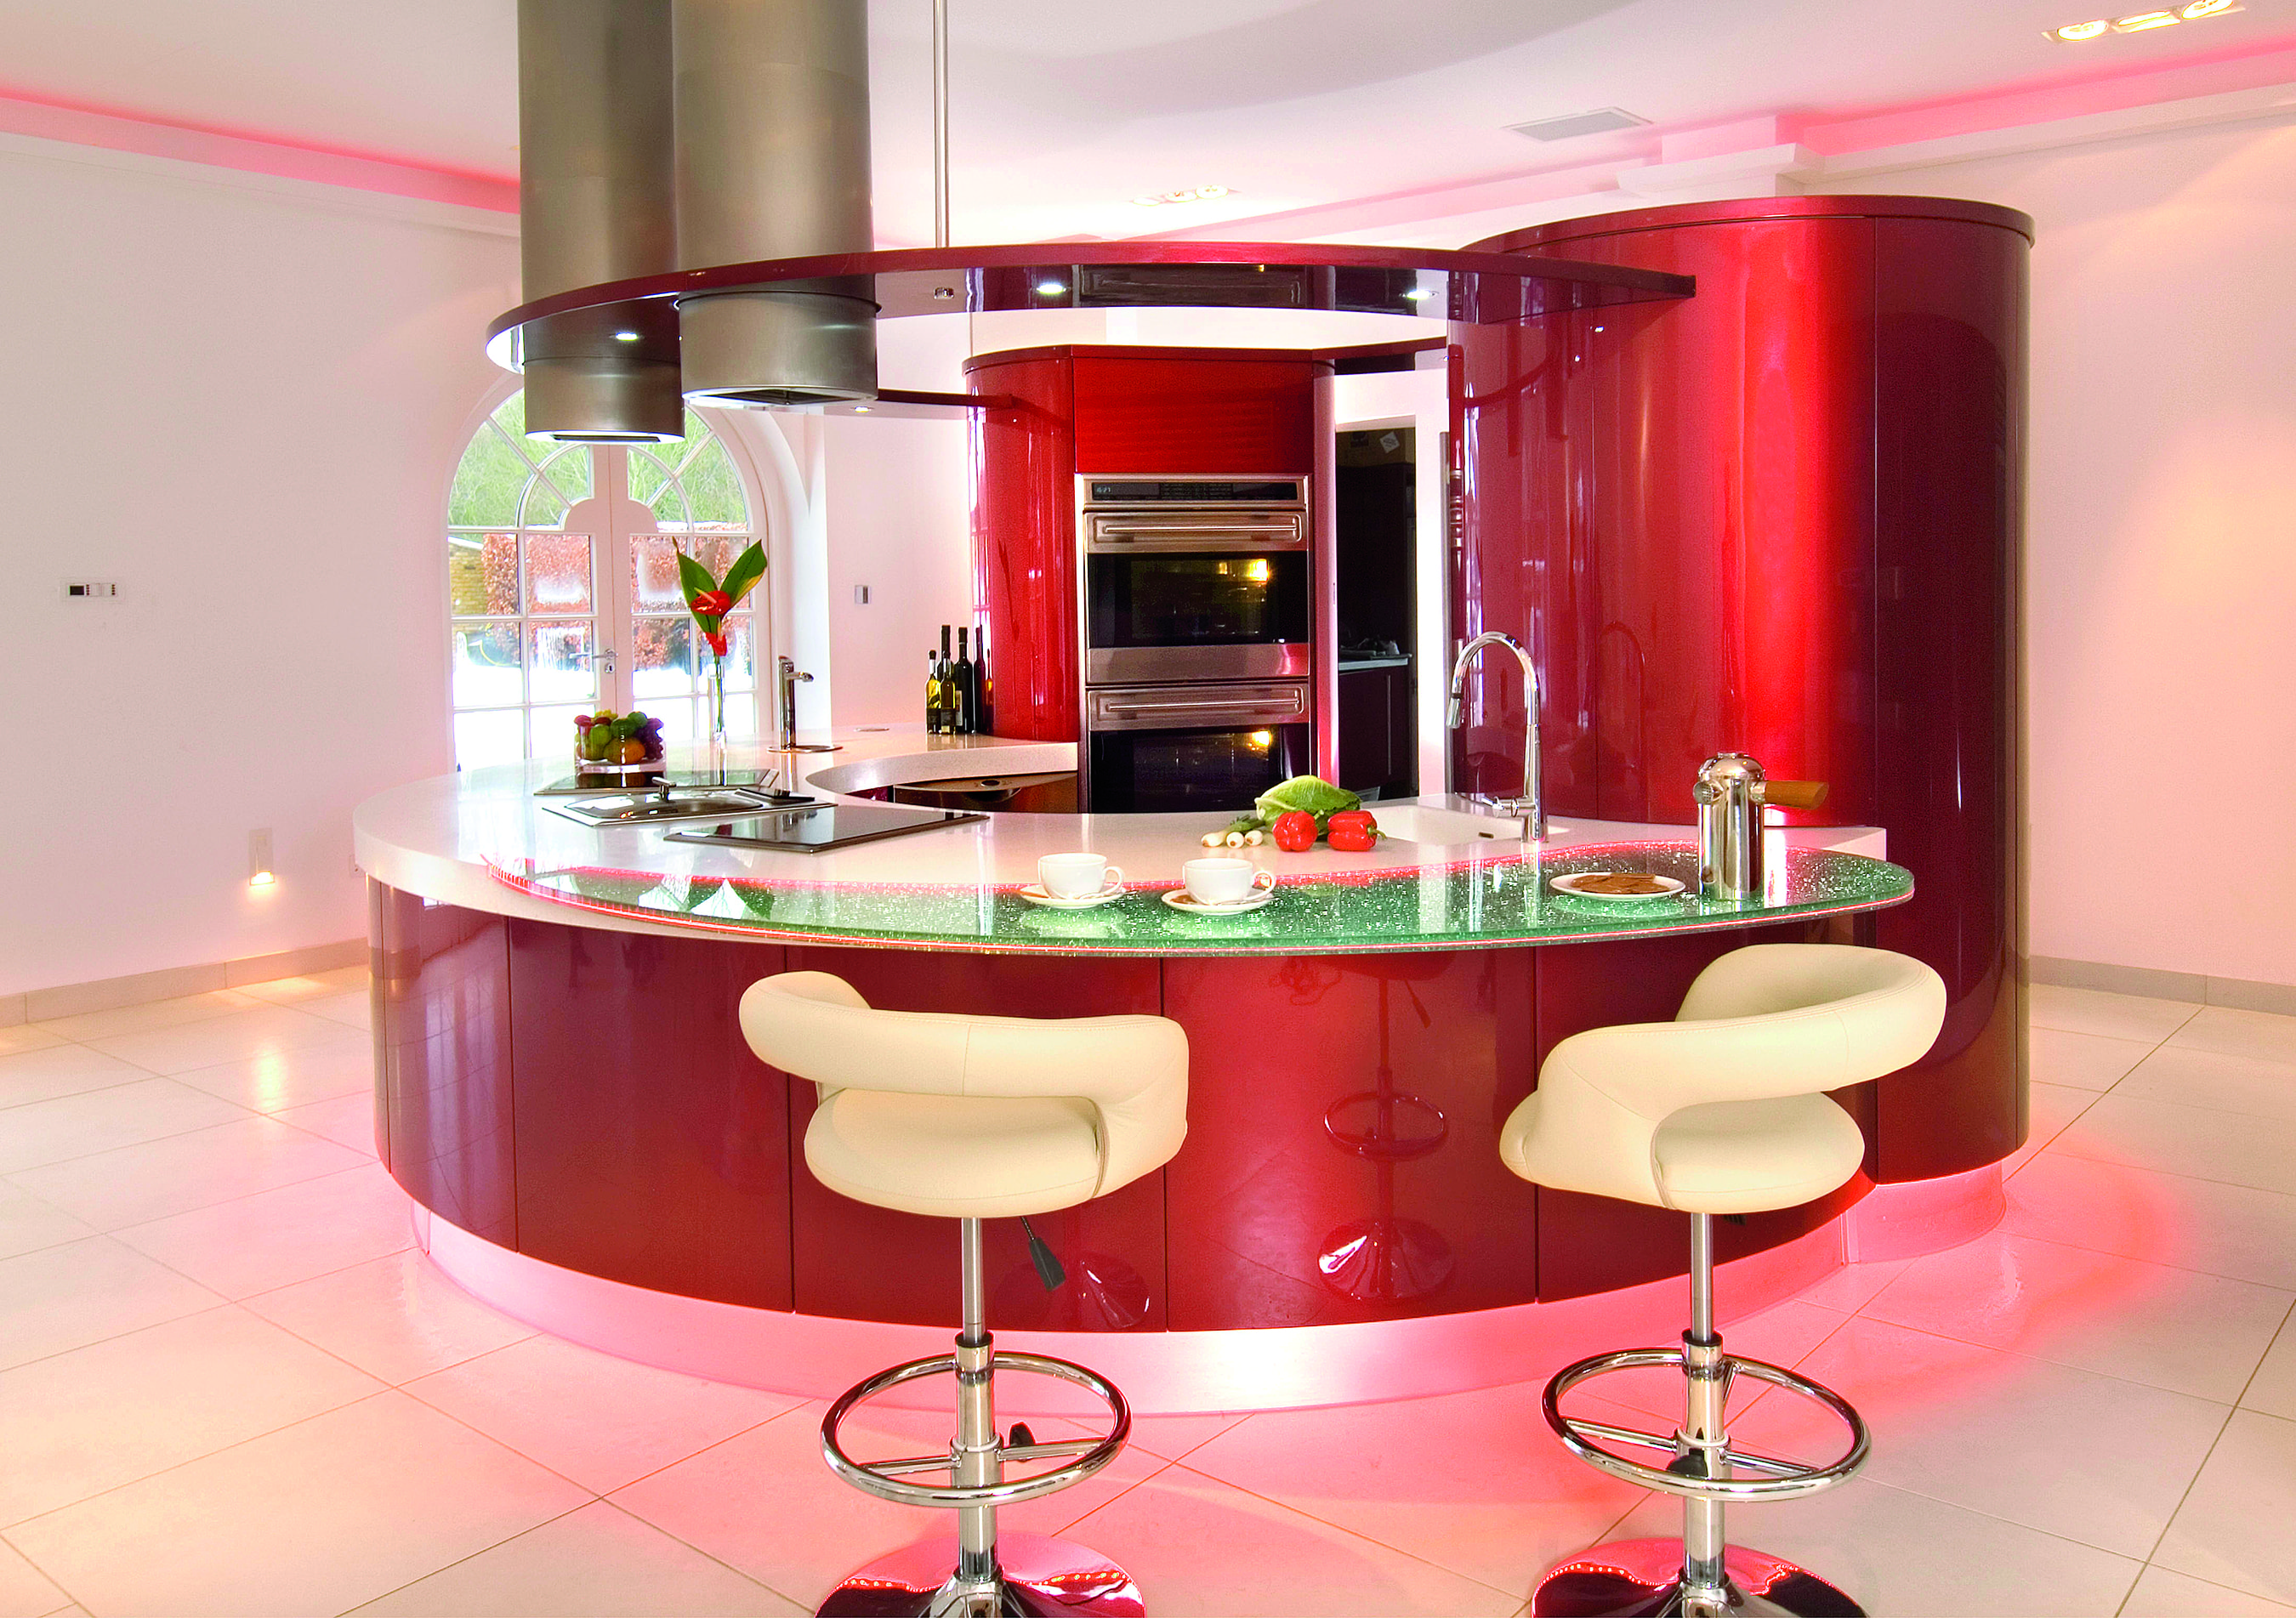 Captivating The Hub Of An English Manor House Is Its Iconic, Eye Candy Kitchen. But The  Cooks Are Its Heart.